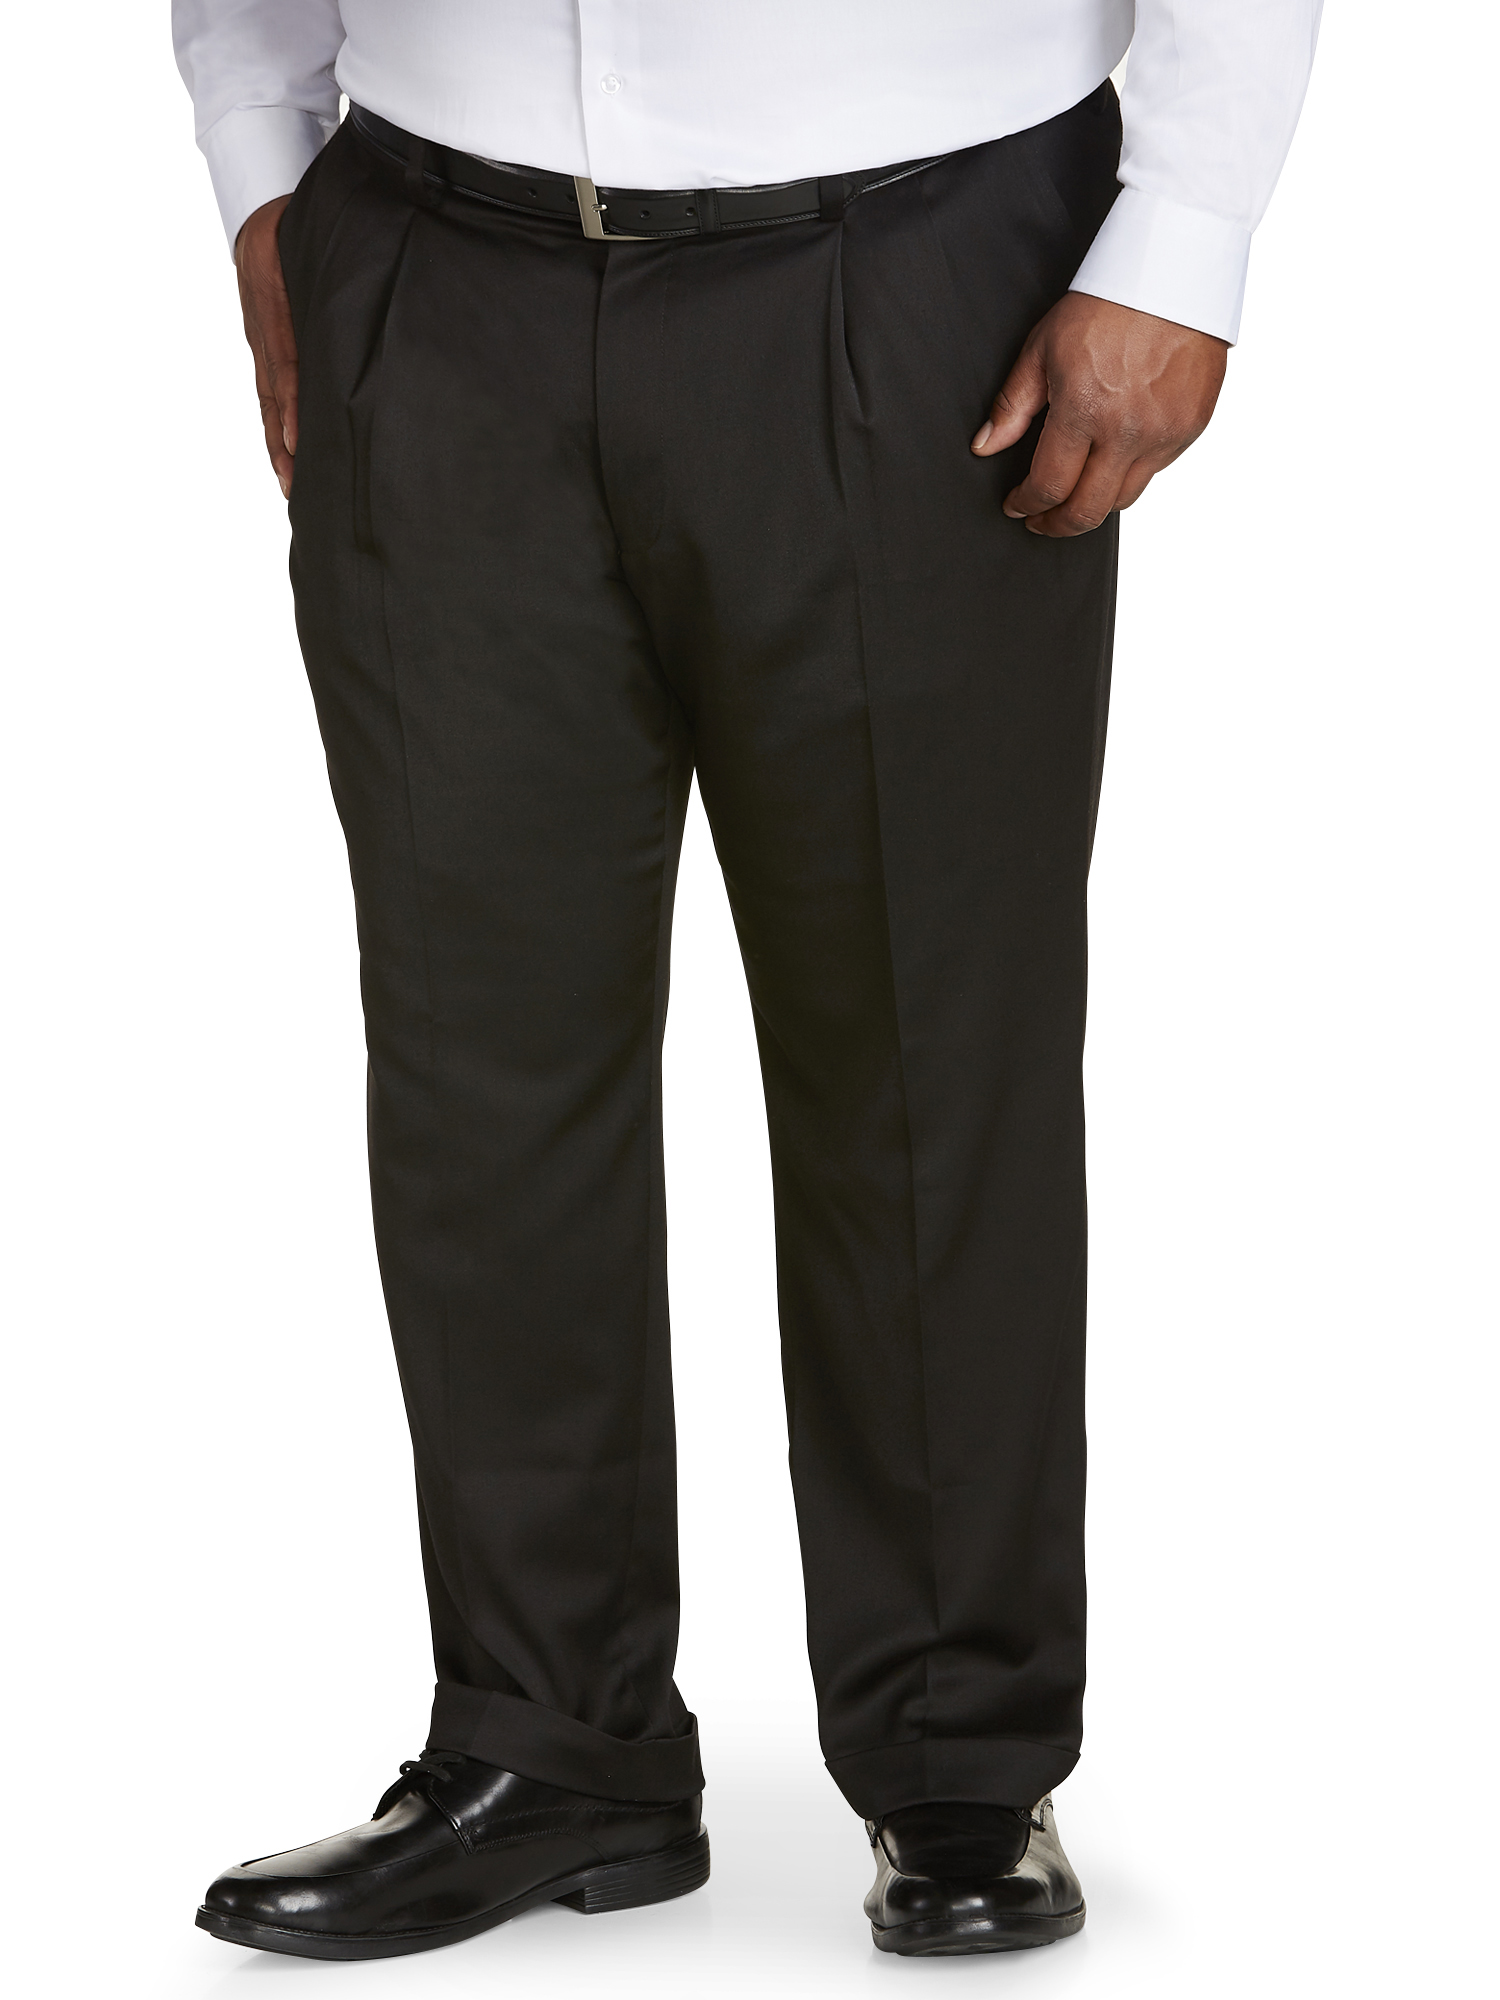 Canyon Ridge Big Men's Pleated Sateen Dress Pant, up to size 62